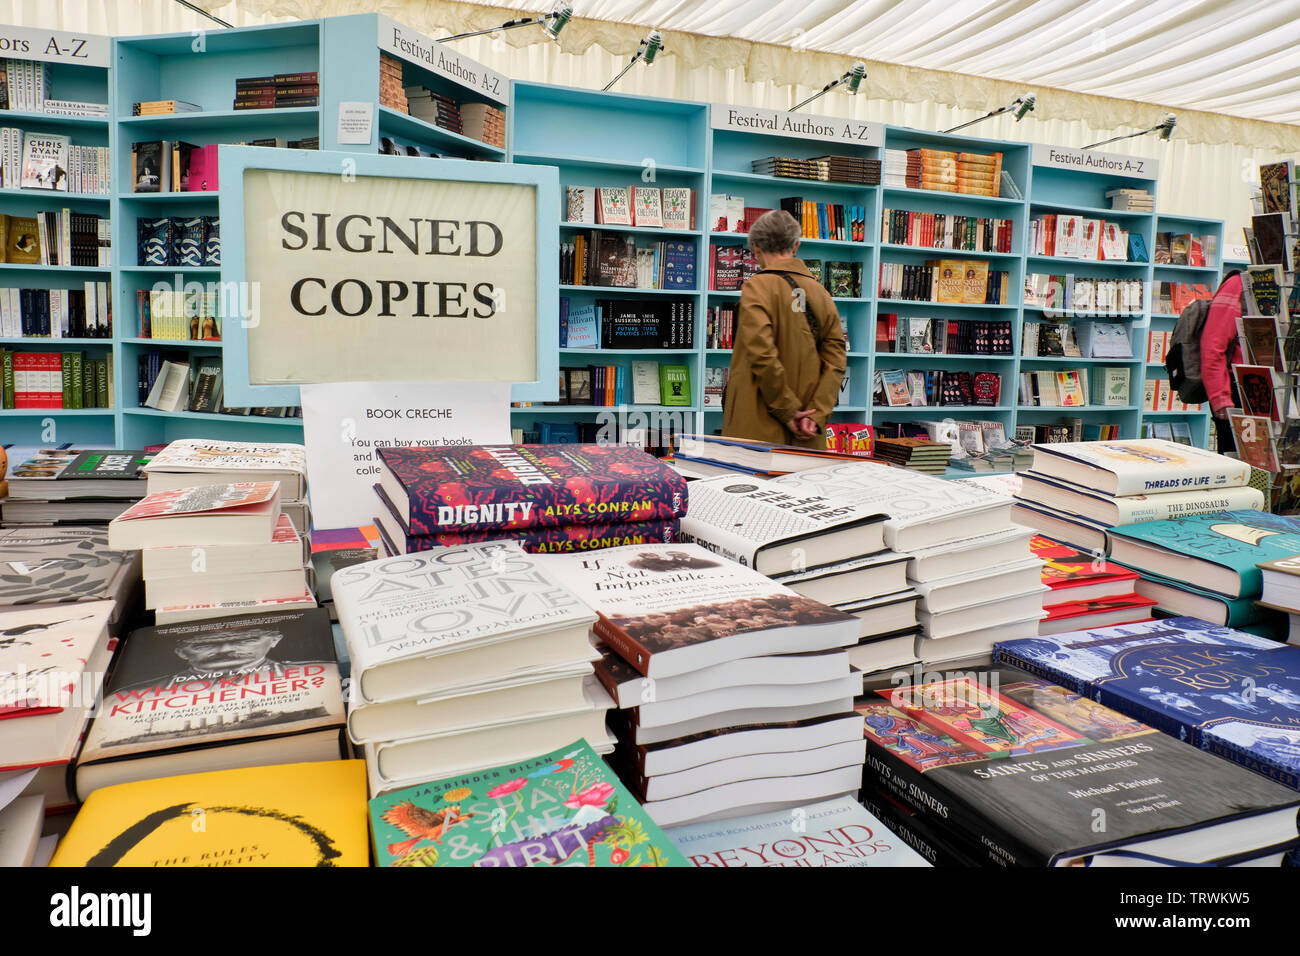 Signed copies of books at the Hay Literary Festival, Hay on Wye, Powys - Stock Image